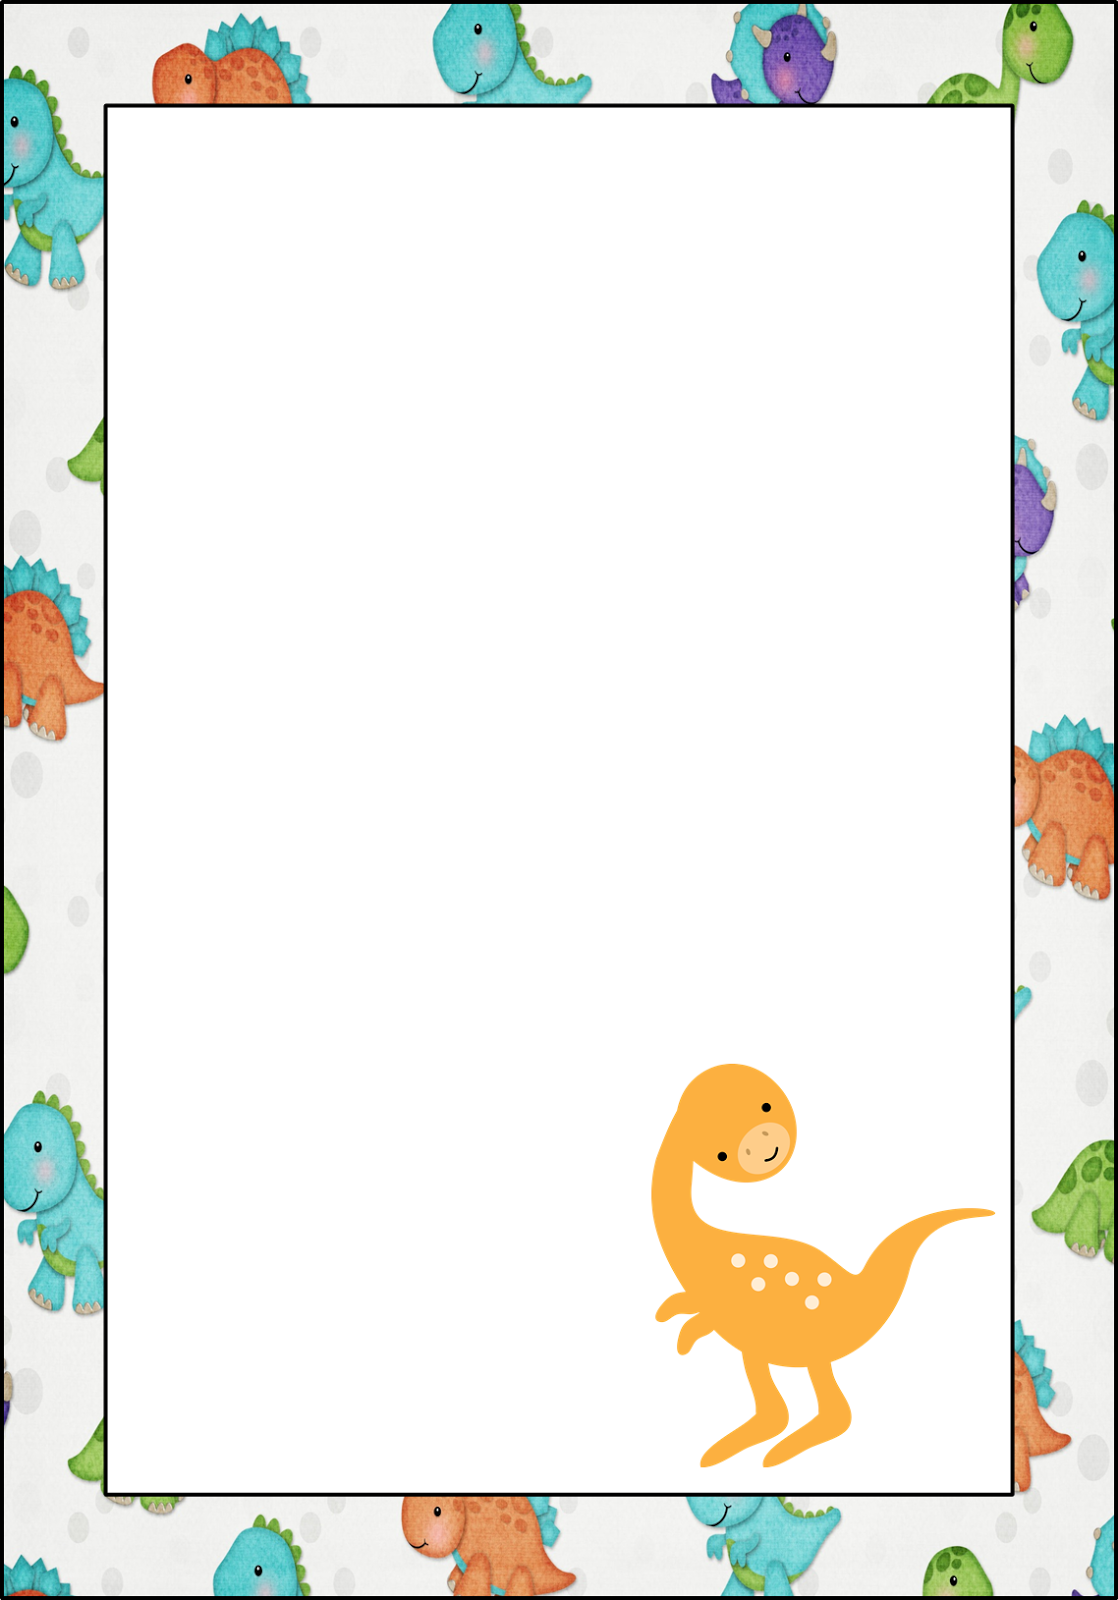 photo about Free Printable Dinosaur Baby Shower Invitations named Dinosaur: Cost-free Printable Frames, Invites, Playing cards or